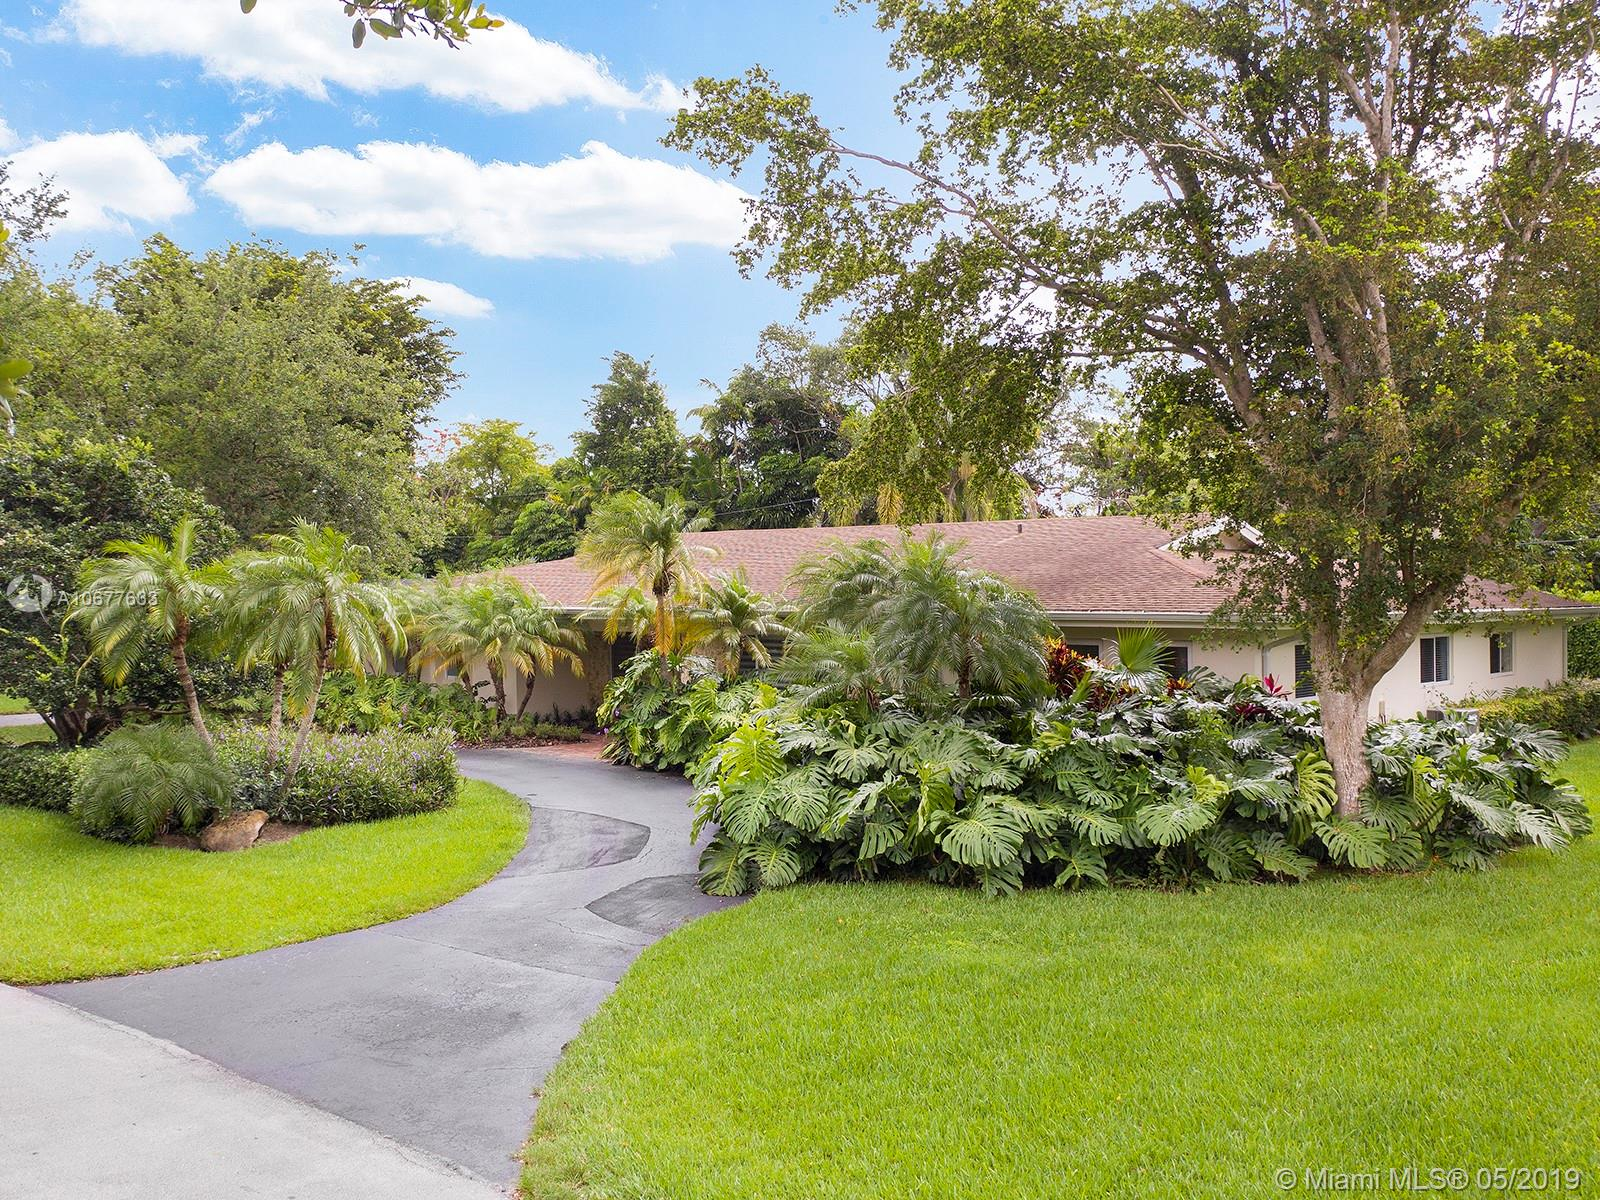 Gorgeous Updated Family Home On Desirable Central Pinecrest Half Acre<Br />Street. Large 4/3 With Fully Remodeled 2013 Renovation Which<Br />Includes: State-Of-The-Art Kitchen, Kid'S Work Space, Gorgeous<Br />Porcelain Floors, Impact Windows And Doors, All New Lighting, New<Br />Electrical, New Gas Grill, & More! Huge And Ideal Lush Private Yard<Br />And Pool-Patio Area. 2018 Ac Unit, 2006 Roof. Easy Walk To Pinecrest<Br />Schools.